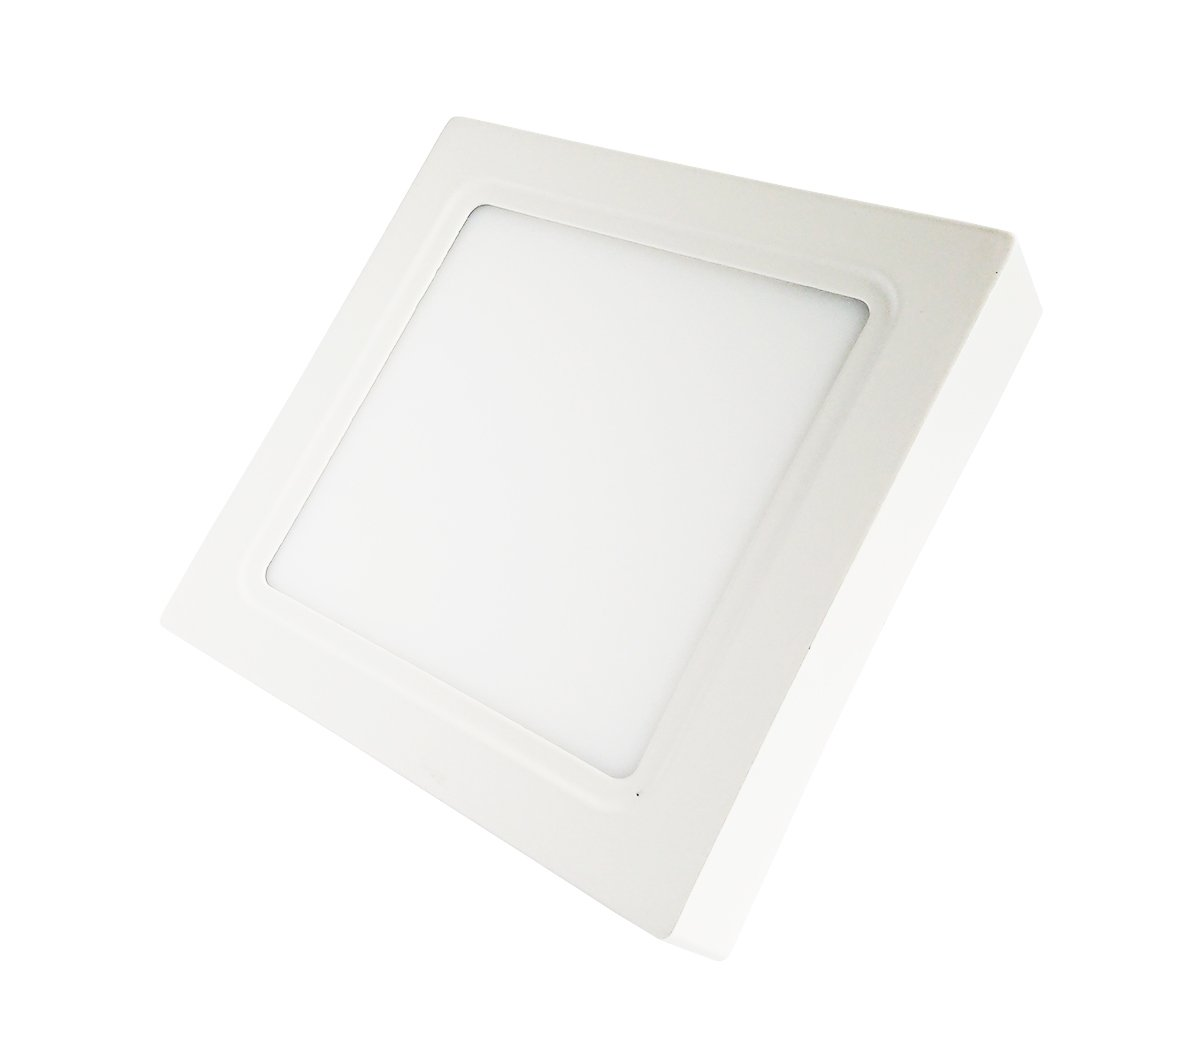 Lumentech Square-Shaped LED Surface-Mounted Ceiling Down Light - White - 12 W - 4000 K [Energy Class A]